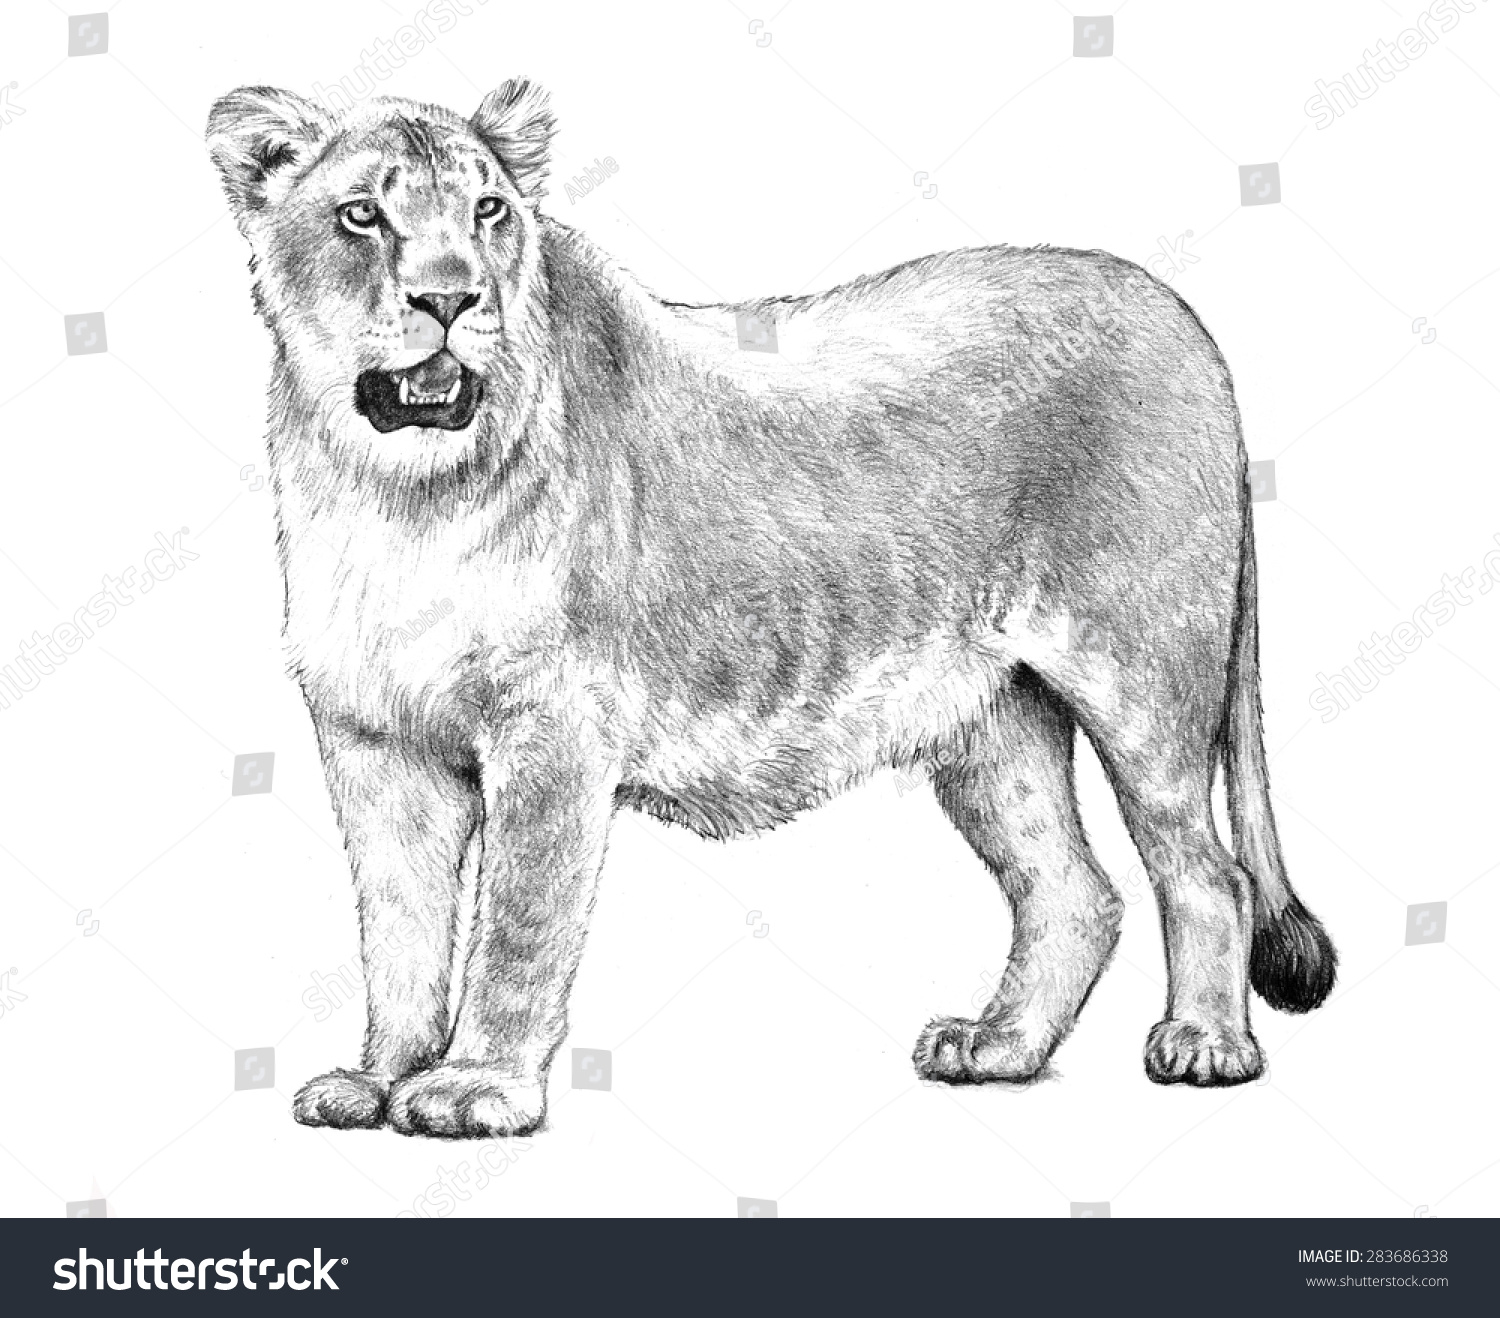 Female Lion Sketch Or Lioness Illustration Hand Drawn